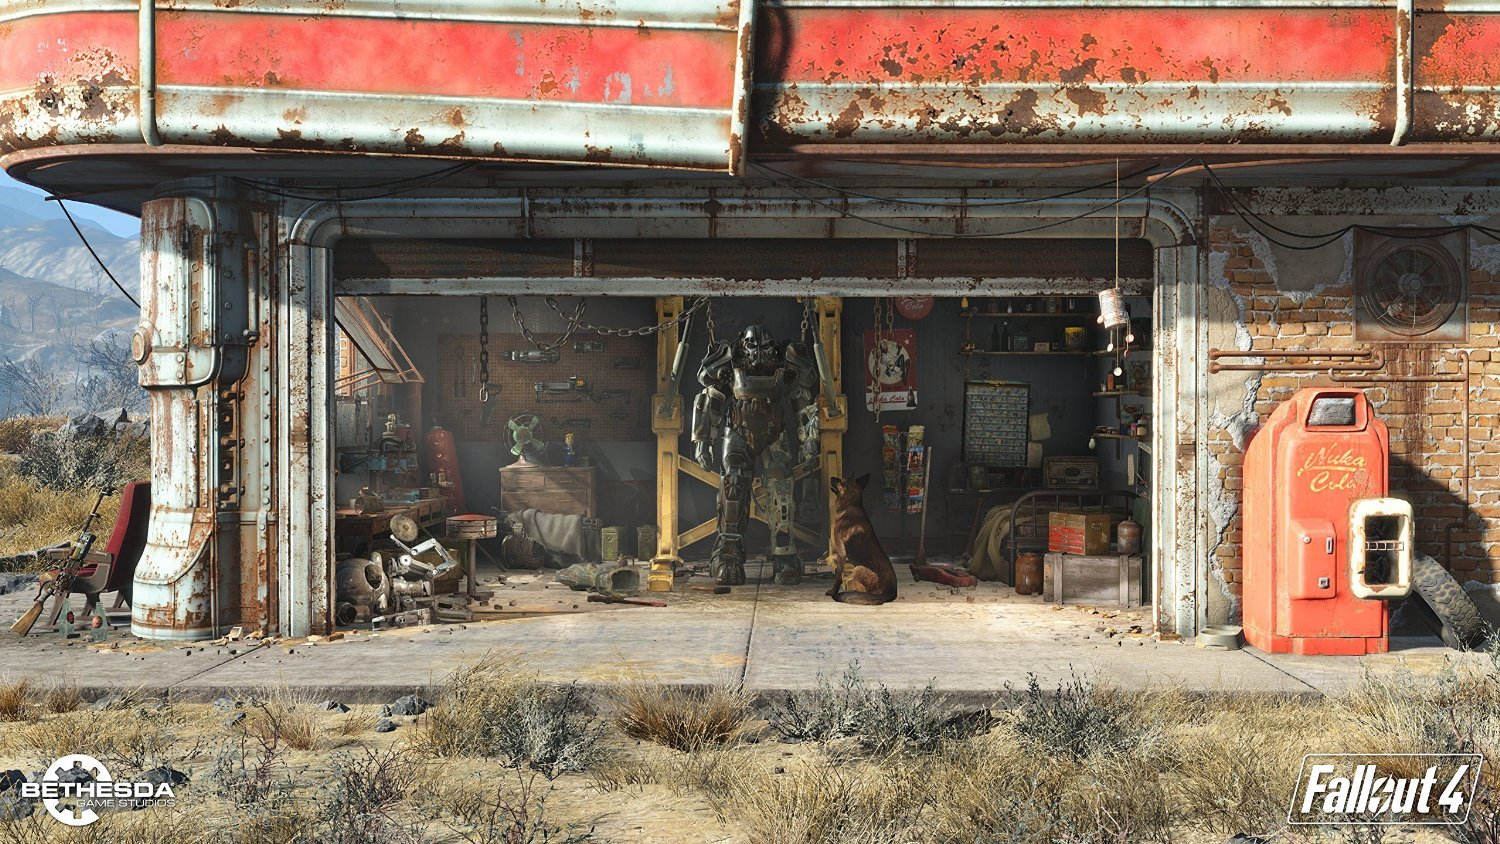 Fallout 4 (with Fallout 3 DLC) Xbox One Game by Bethesda (Image #3)